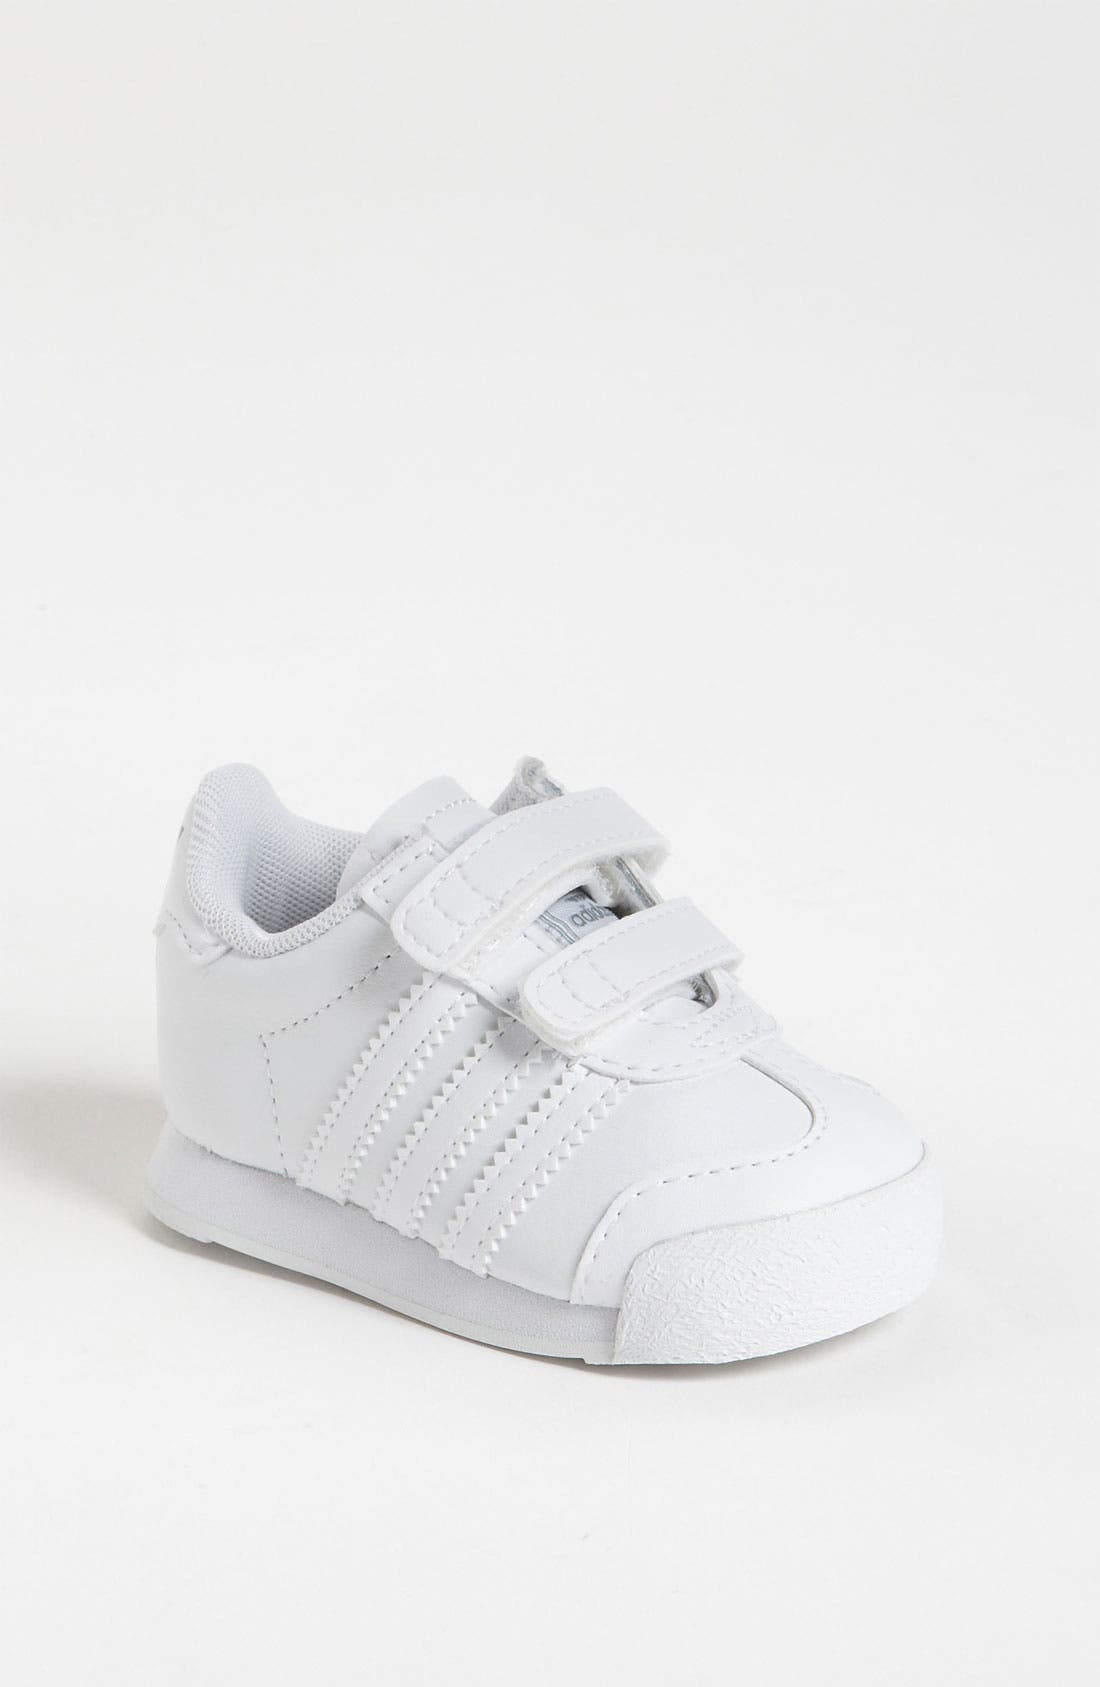 Alternate Image 1 Selected - adidas 'Samoa' Sneaker (Baby, Walker & Toddler)